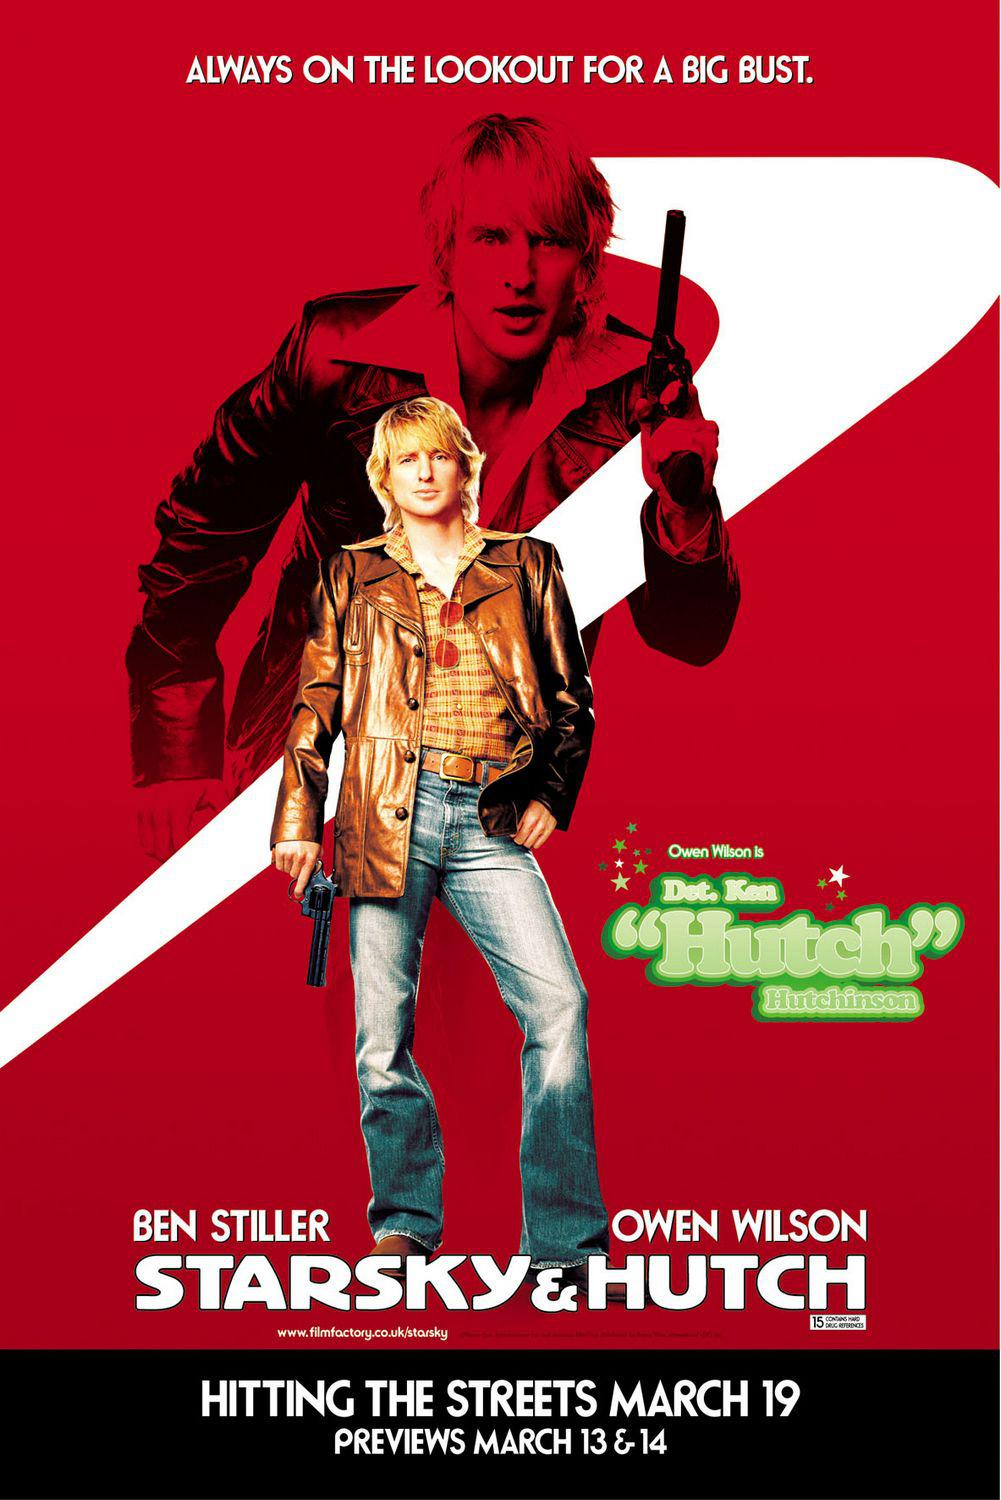 Starsky and Hutch - film poster - Owen Wilson is Det Ken Hutch Hutchinson - Always on the lookout for a big bust